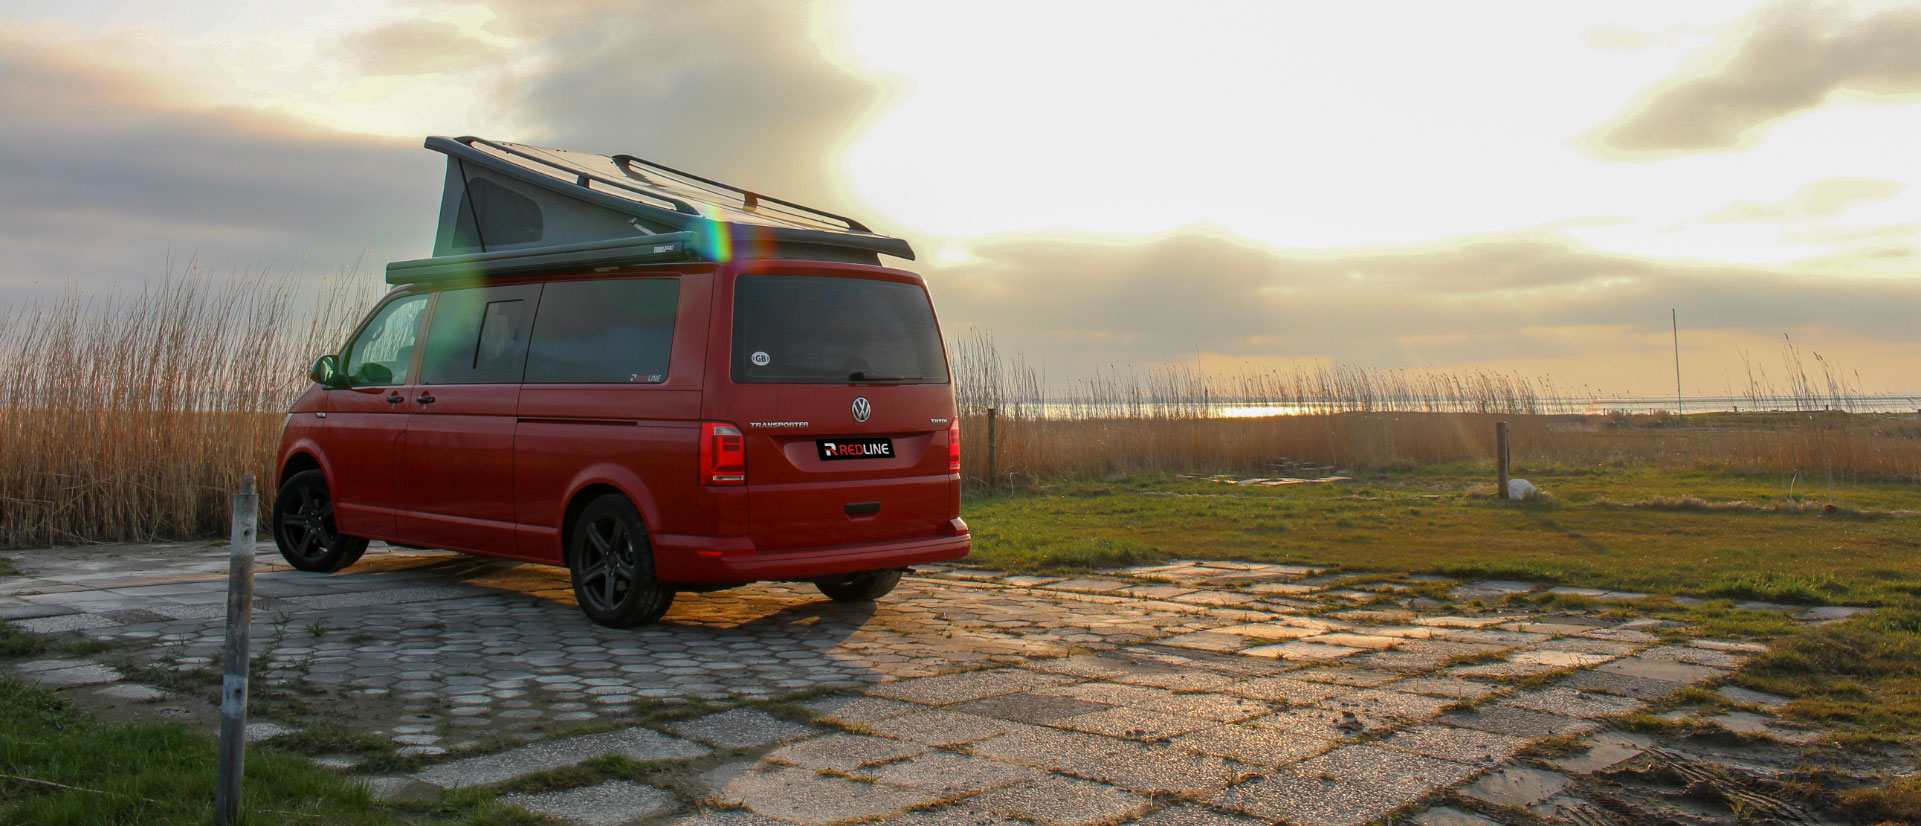 Tips for Travelling the World in a Campervan